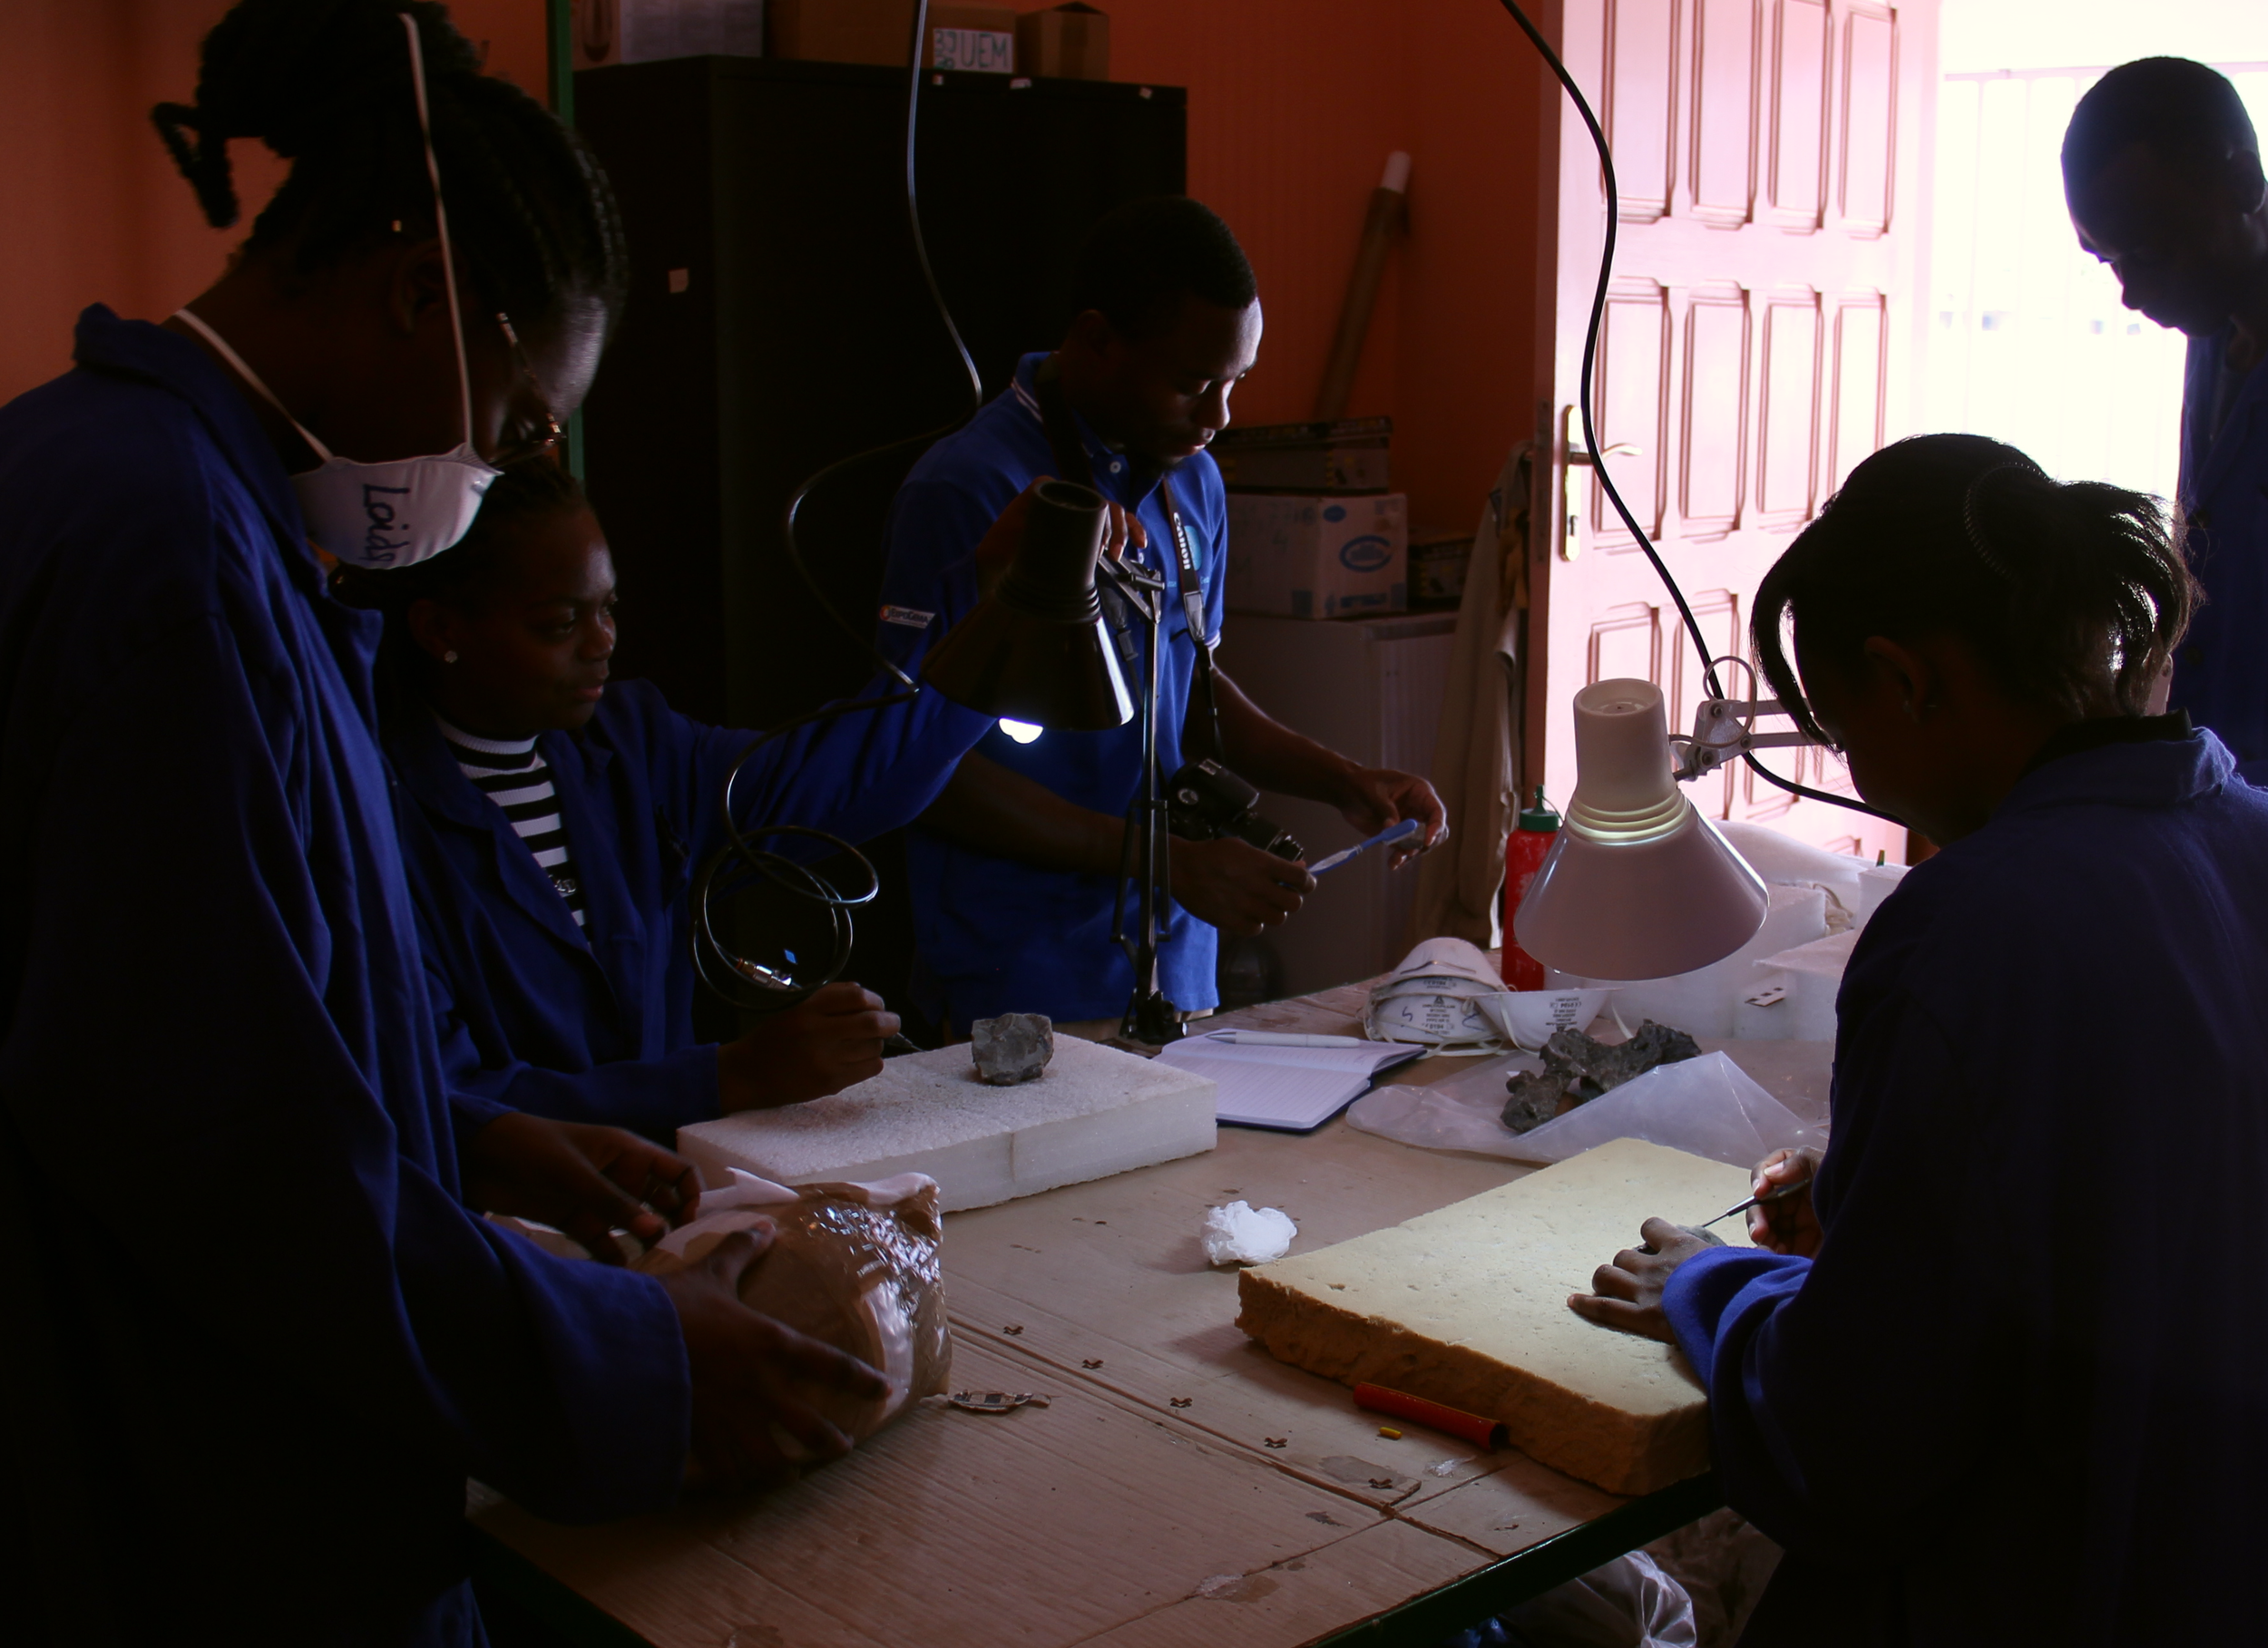 The PaleoMoz team working together in the fossil preparation laboratory.